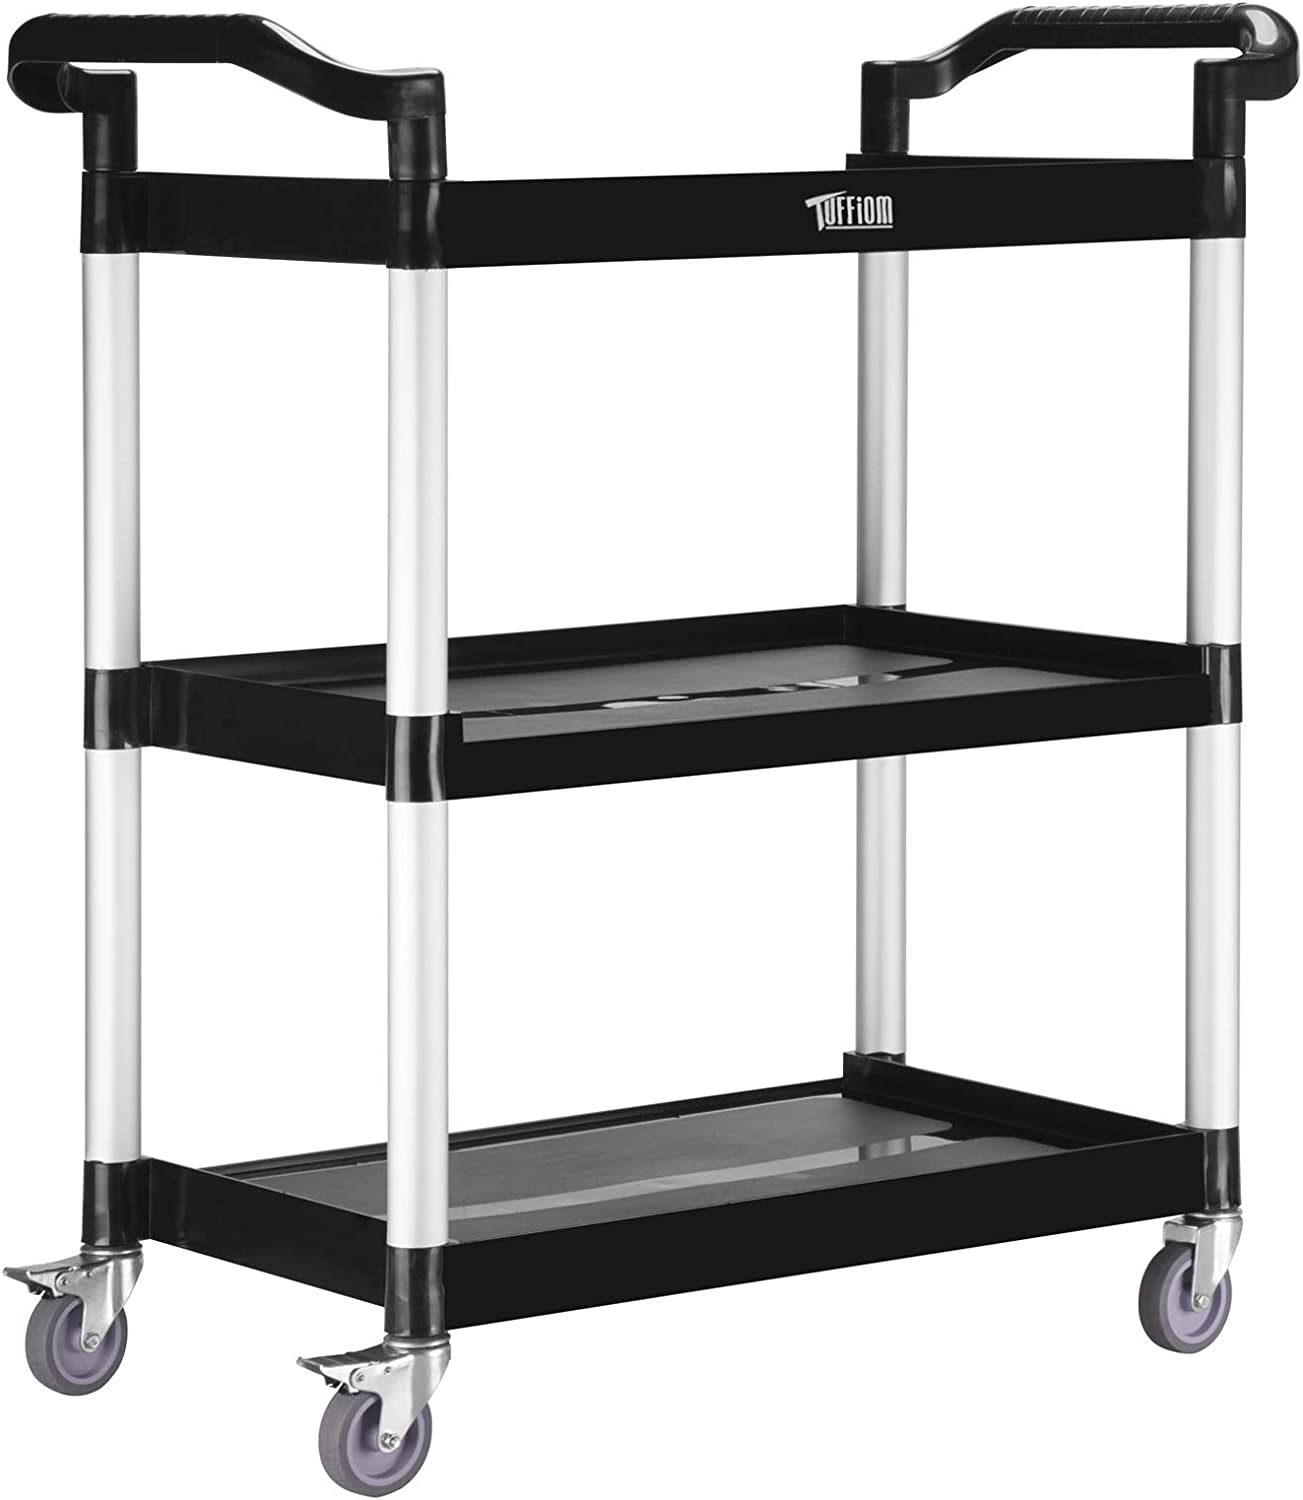 TUFFIOM 3-Tier Plastic Utility Cart, Heavy Duty 390lbs Capacity, Commercial Rolling Service Cart, Ideal for Restaurant, Foodservice, Office, Warehouse, Black (M - 33.8''L x 16.5''W x 35.8''H)